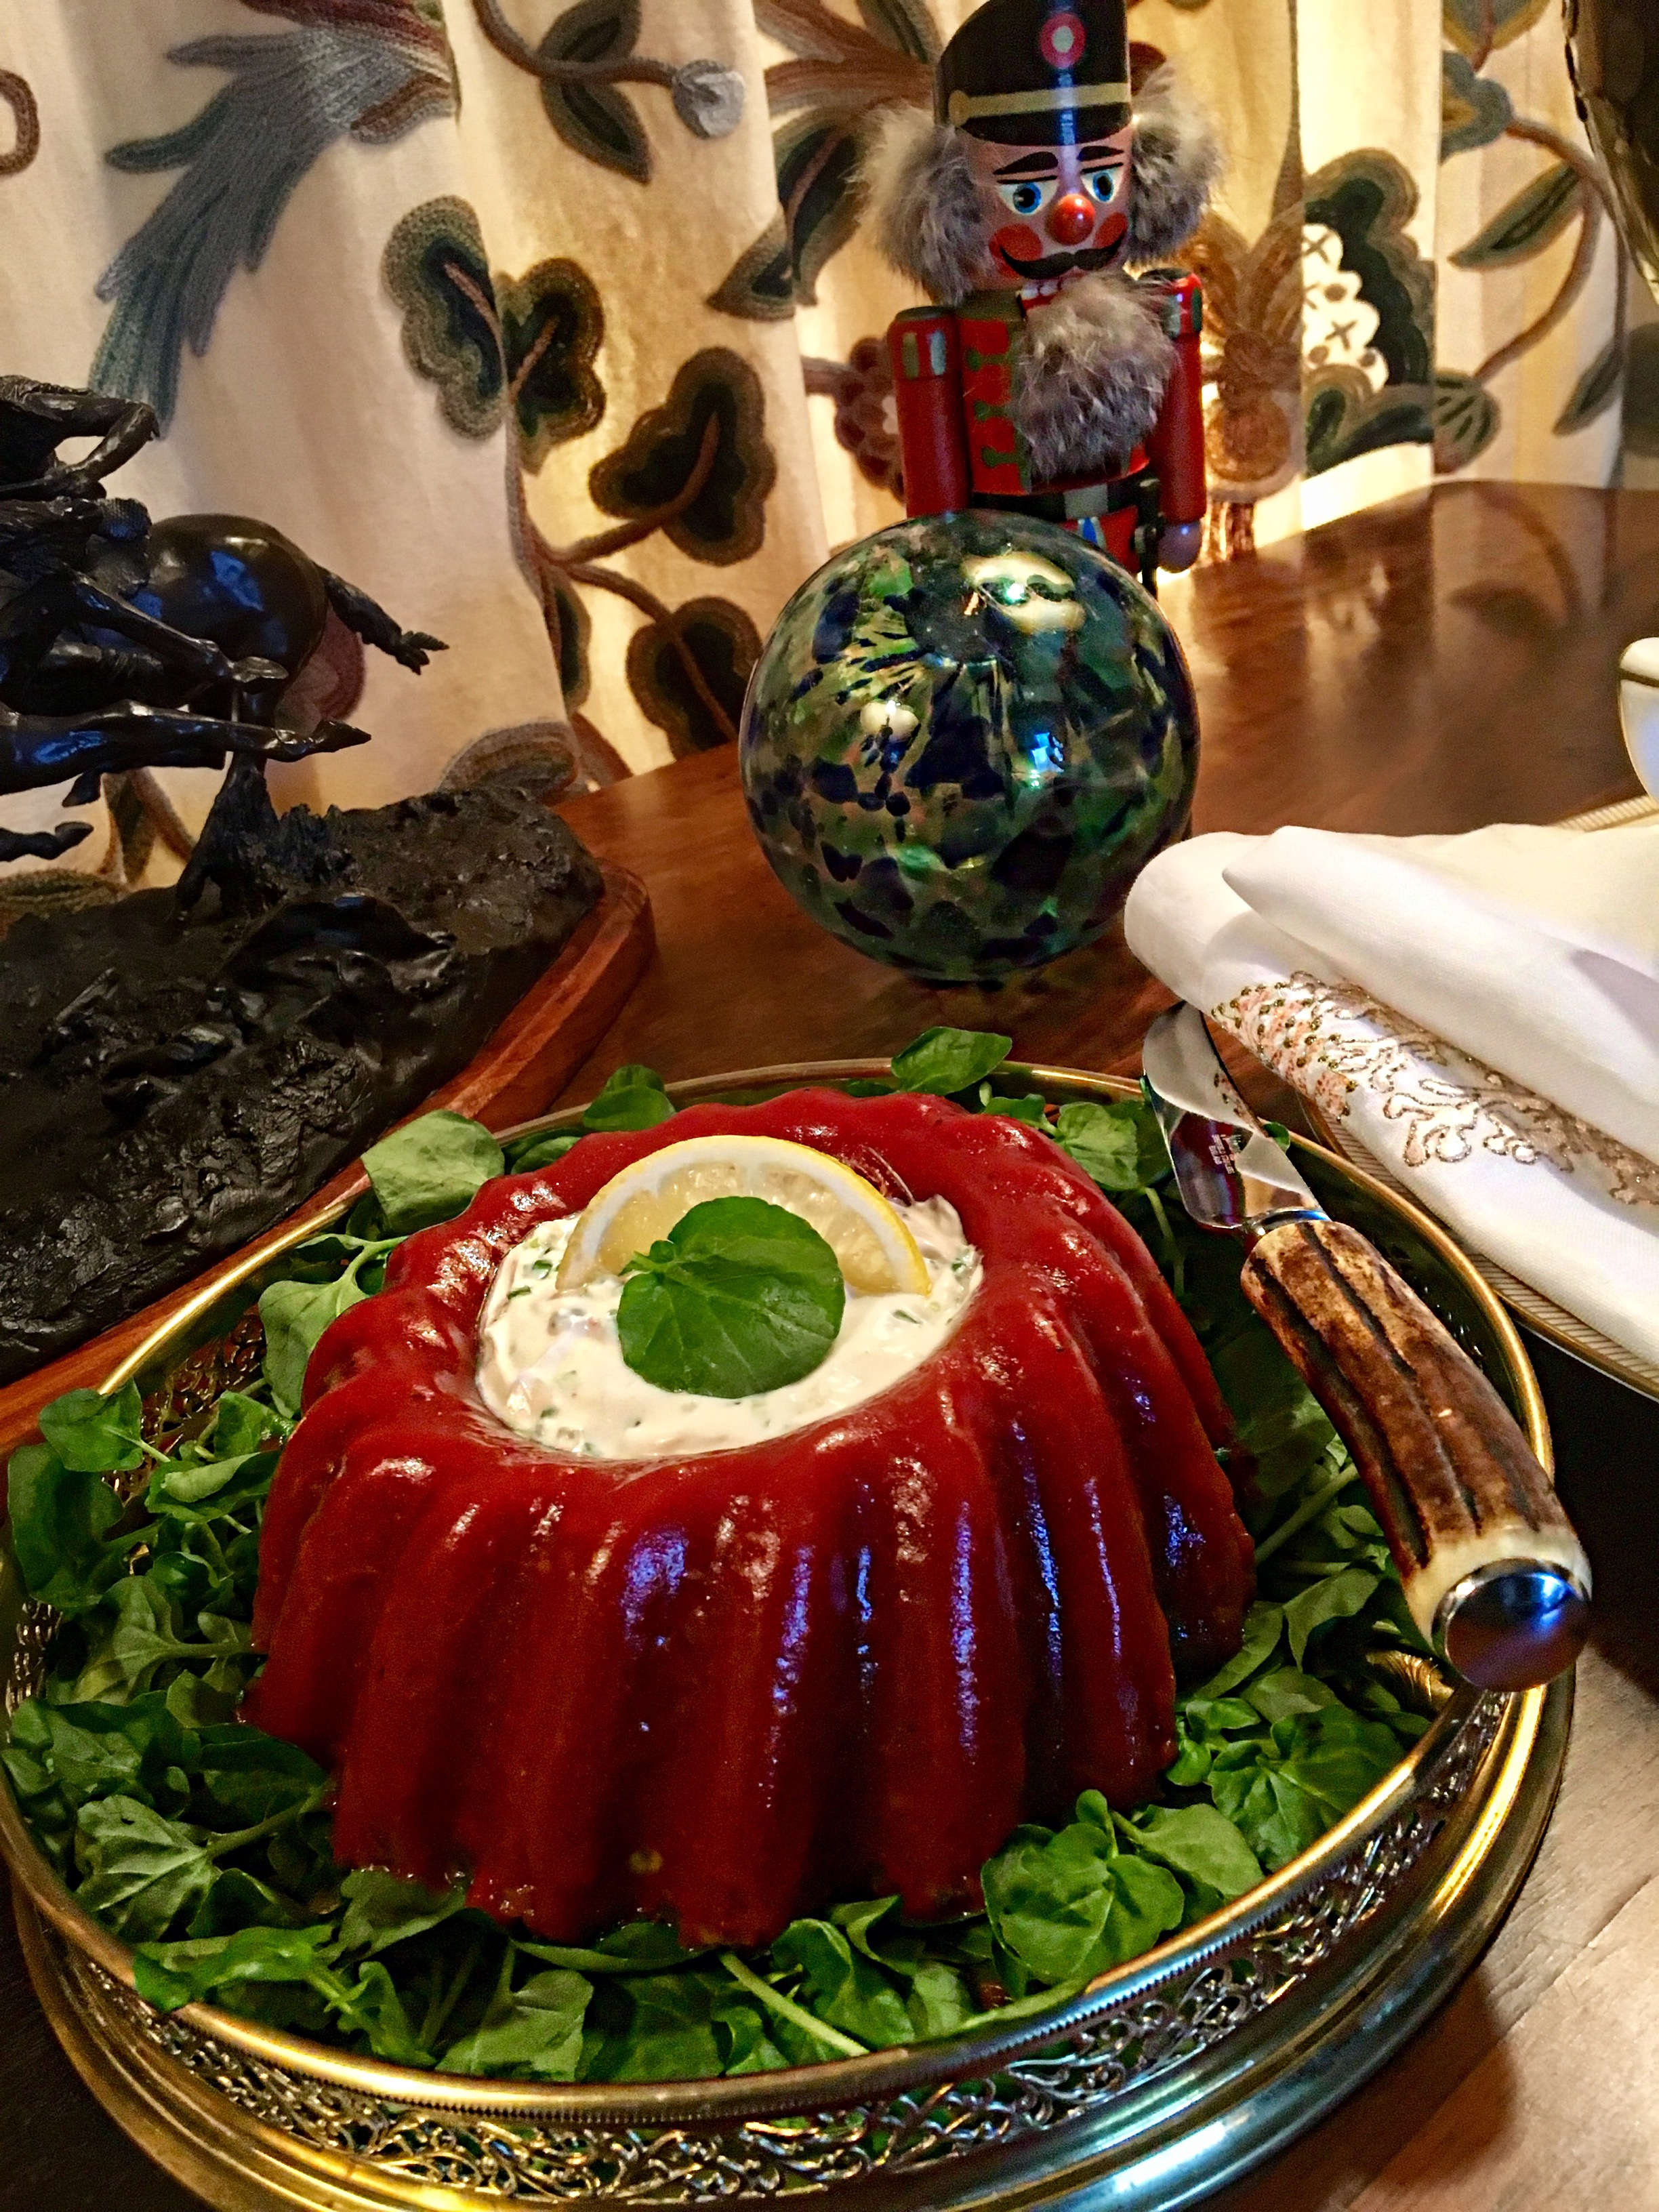 TOMATO ASPIC — IN THE KITCHEN WITH SCOTTY